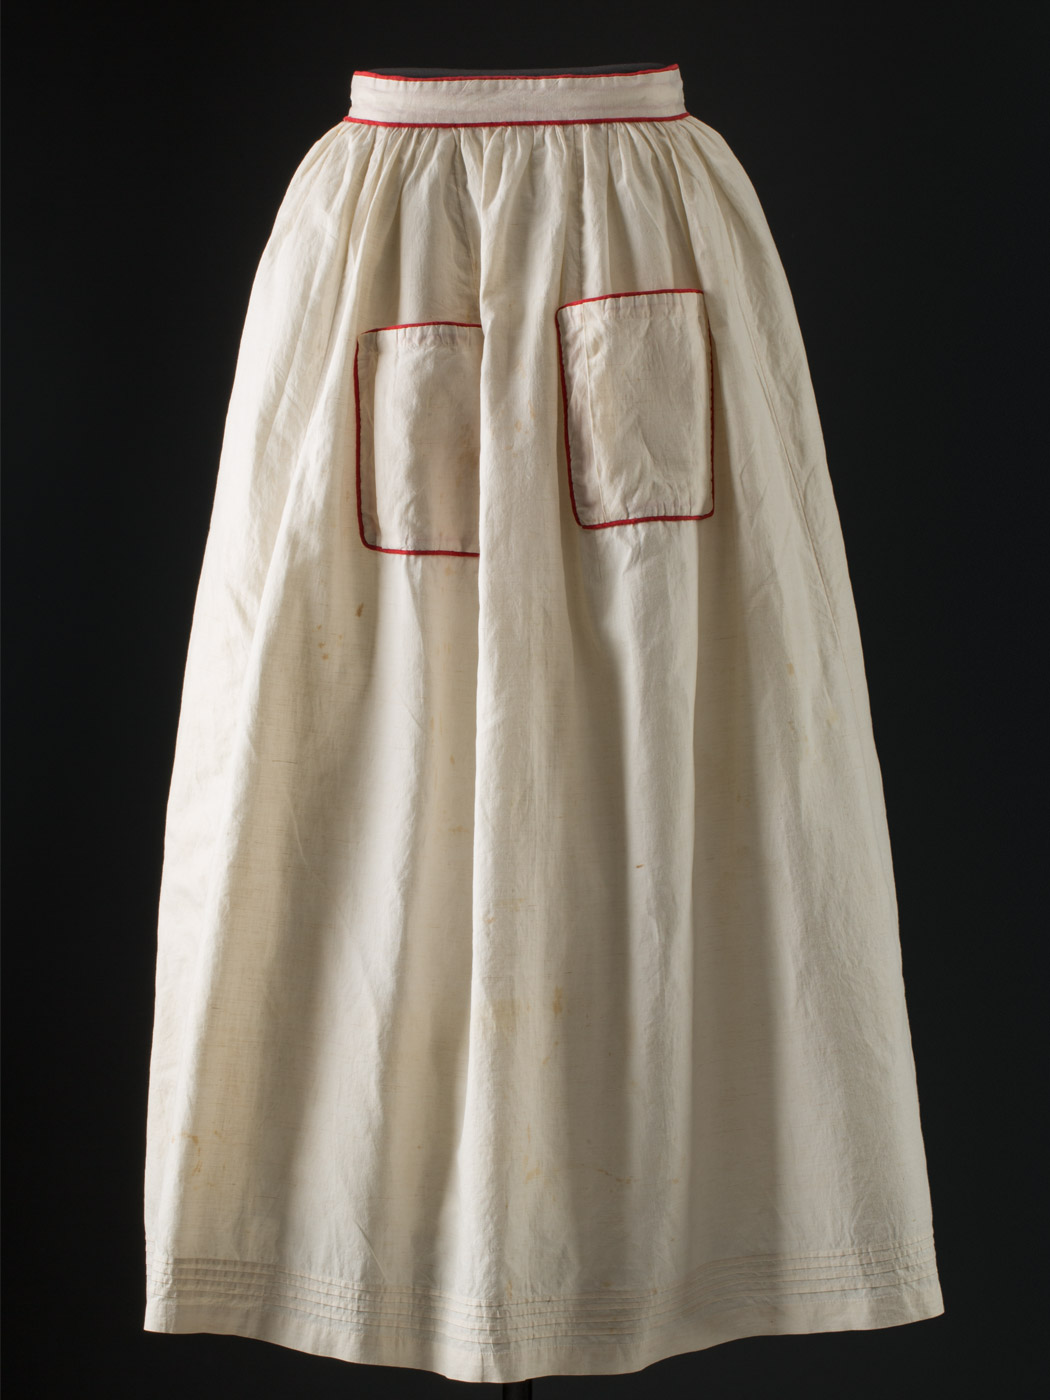 Front view of a white apron with red piping. - click to view larger image